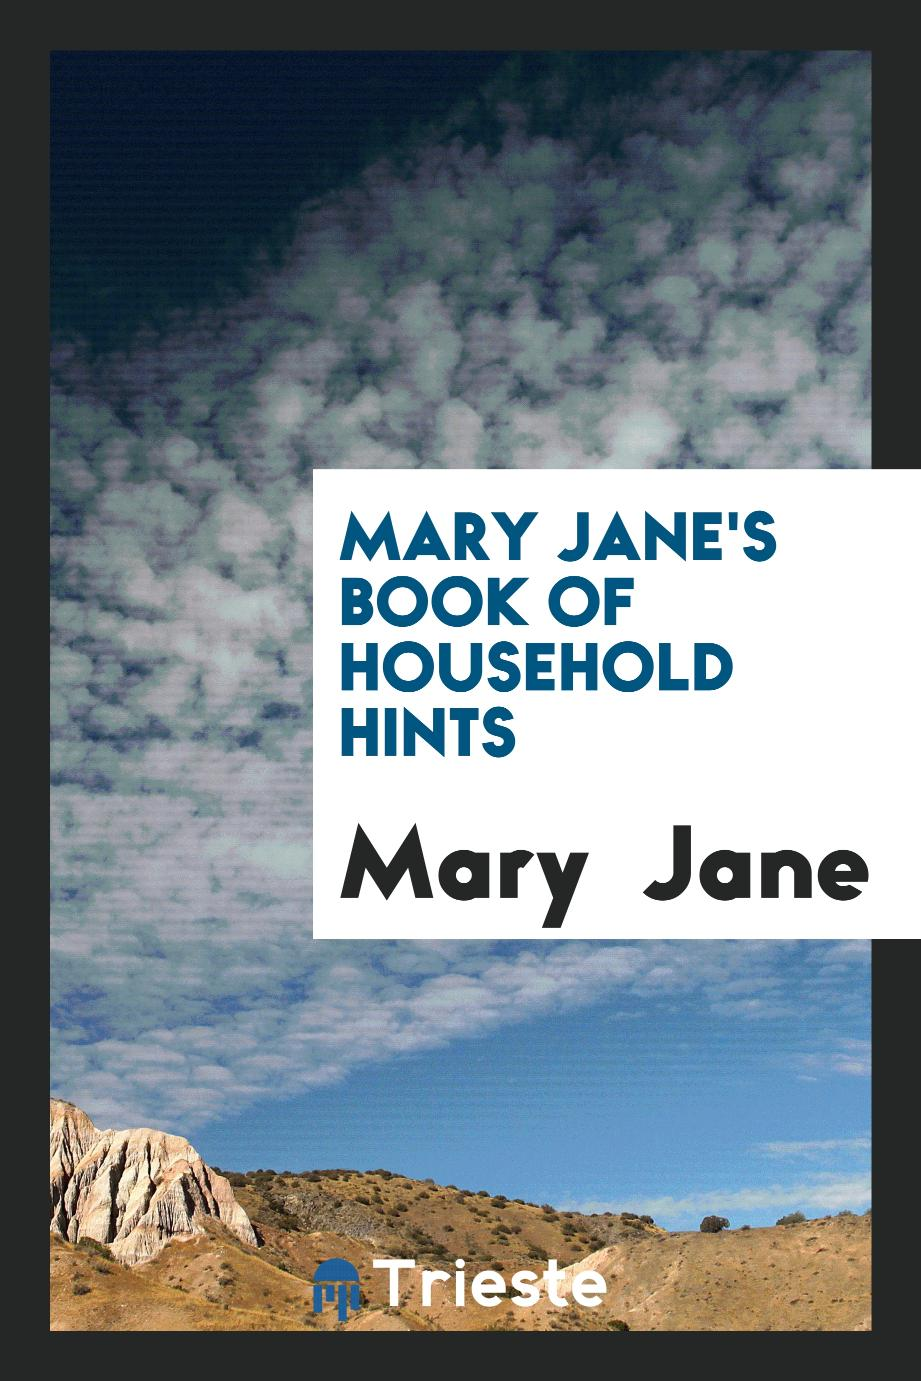 Mary Jane's Book of Household Hints